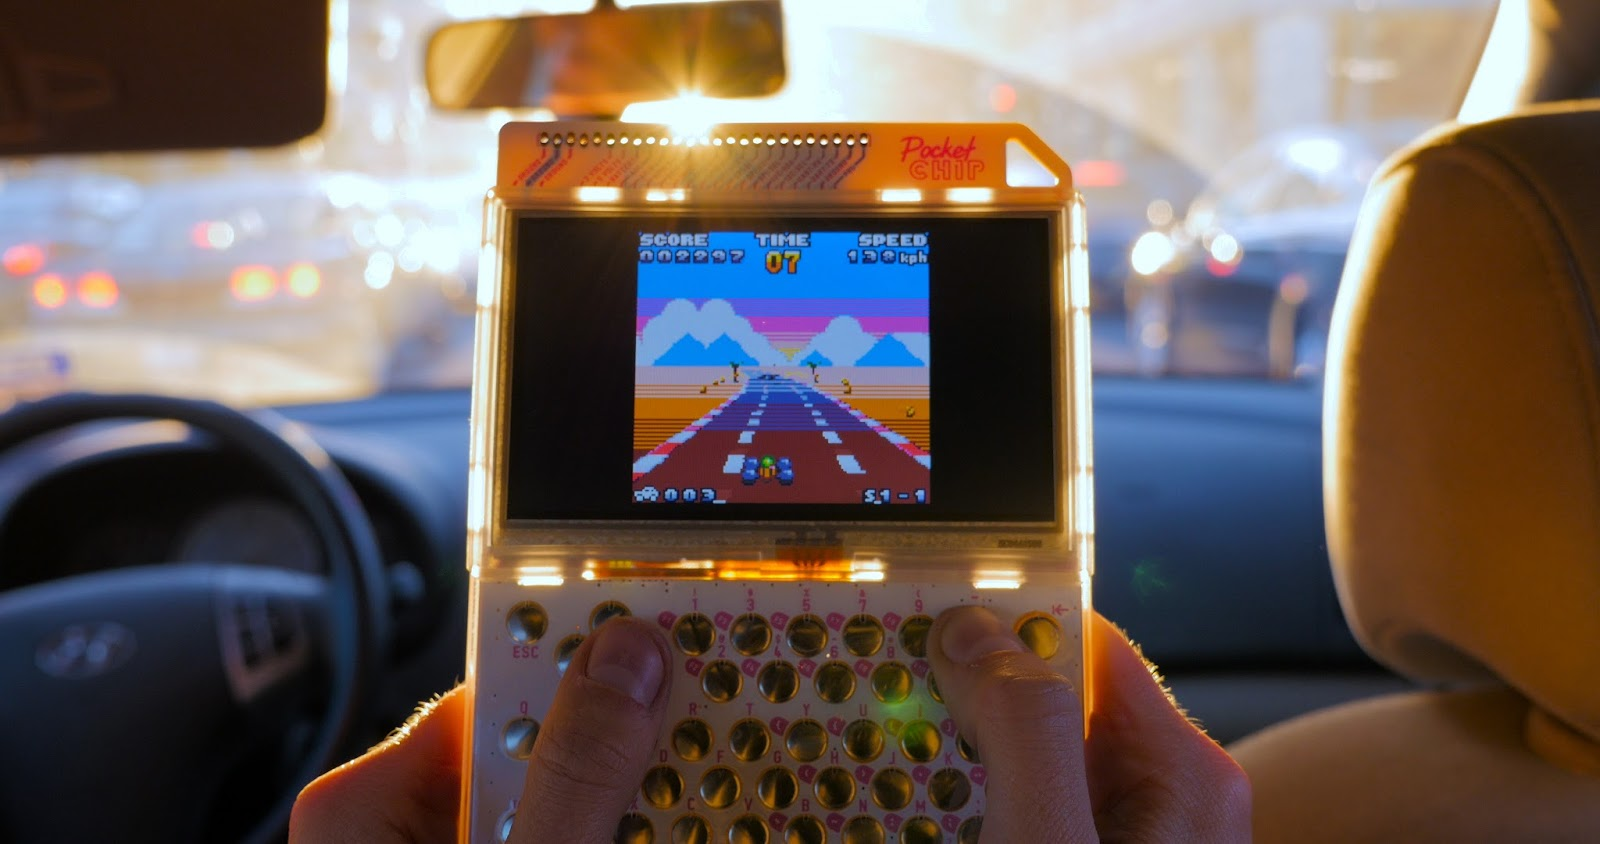 RGCD: An Introduction to the PICO 8